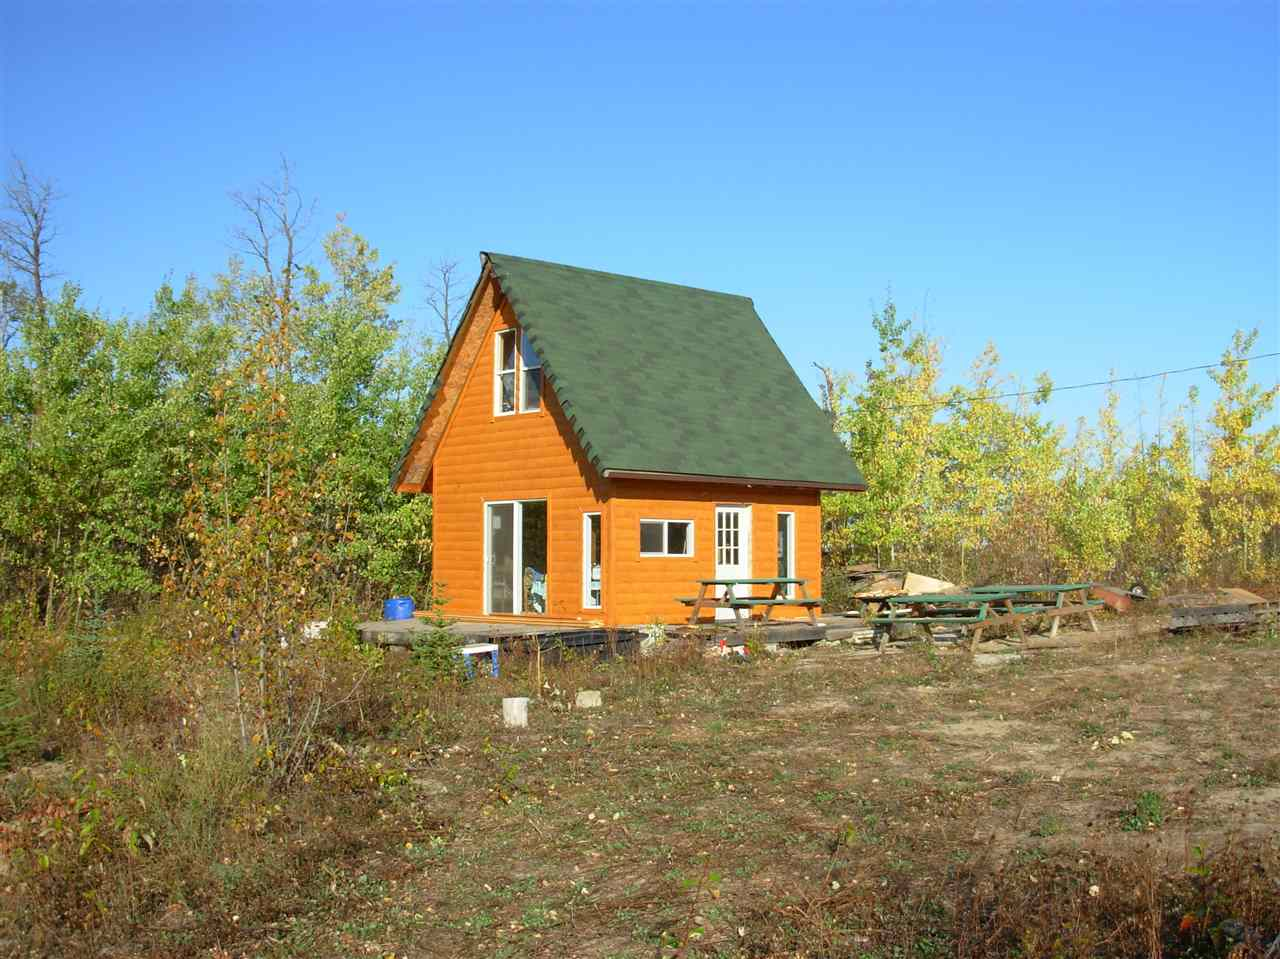 97 50103 Range Road 203, at $119,950